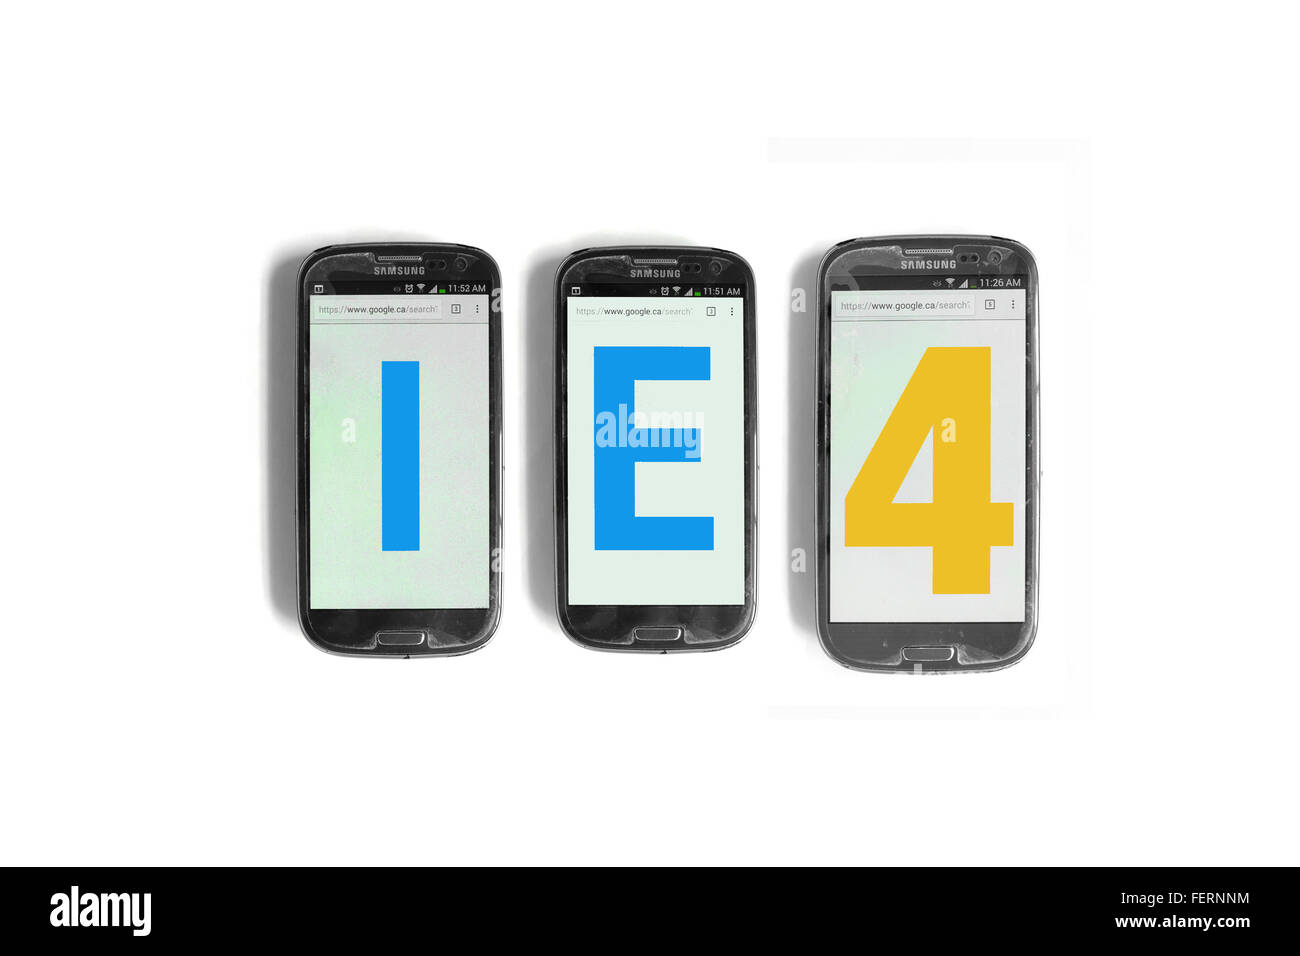 IE4 on the screens of smartphones photographed against a  white background. - Stock Image